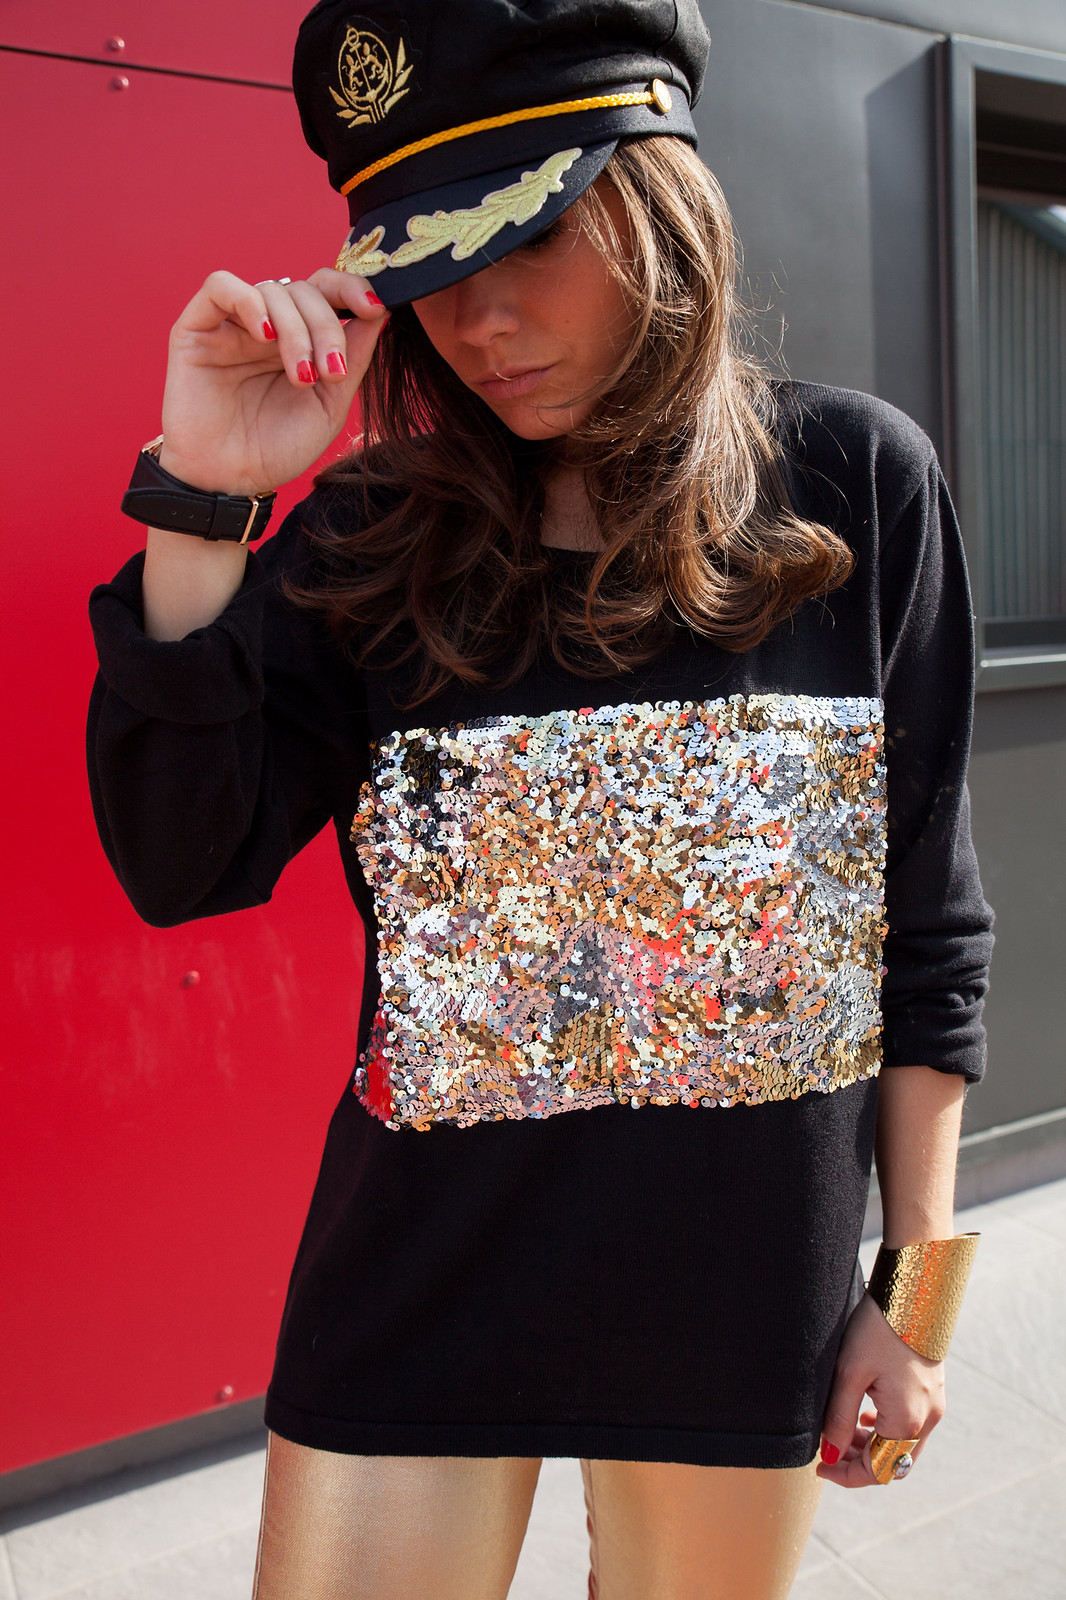 nyc hat theguestgirl laura santolaria influencer barcelona spain sequins look